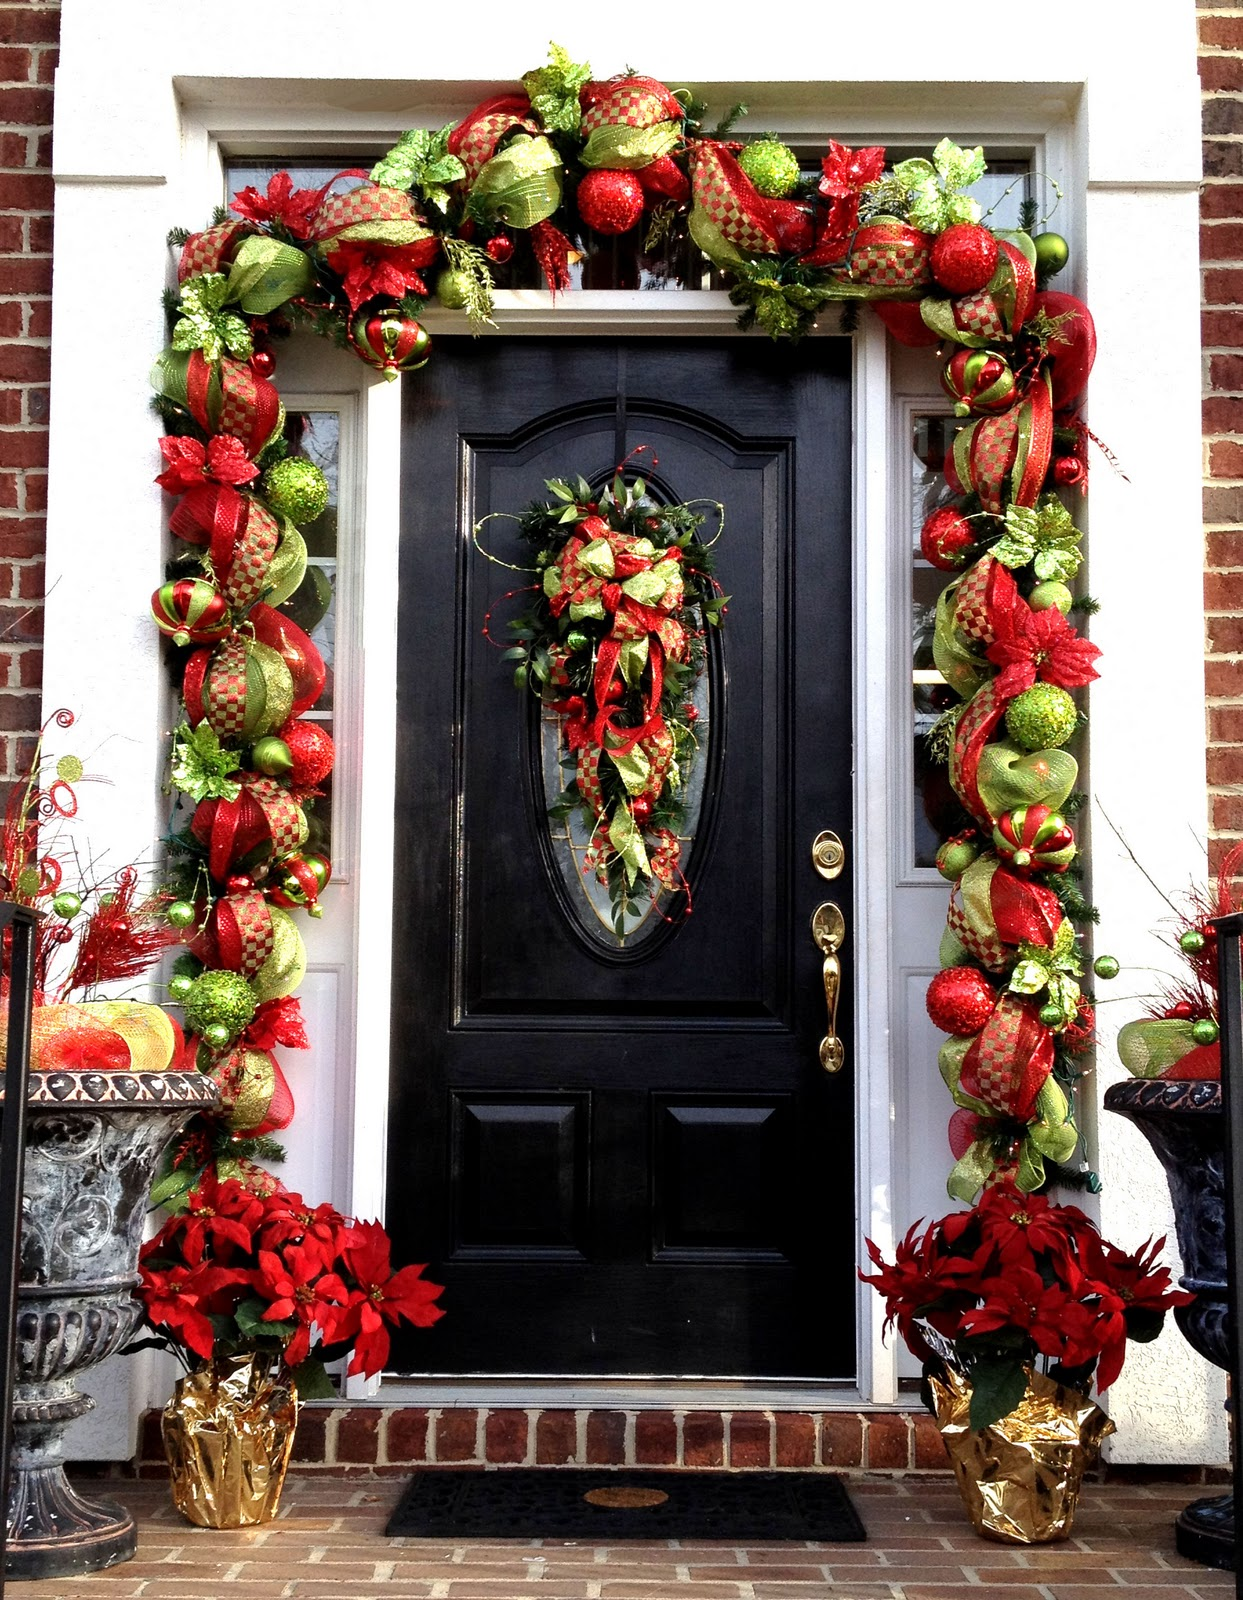 50 Best Outdoor Christmas Decorations for 2016